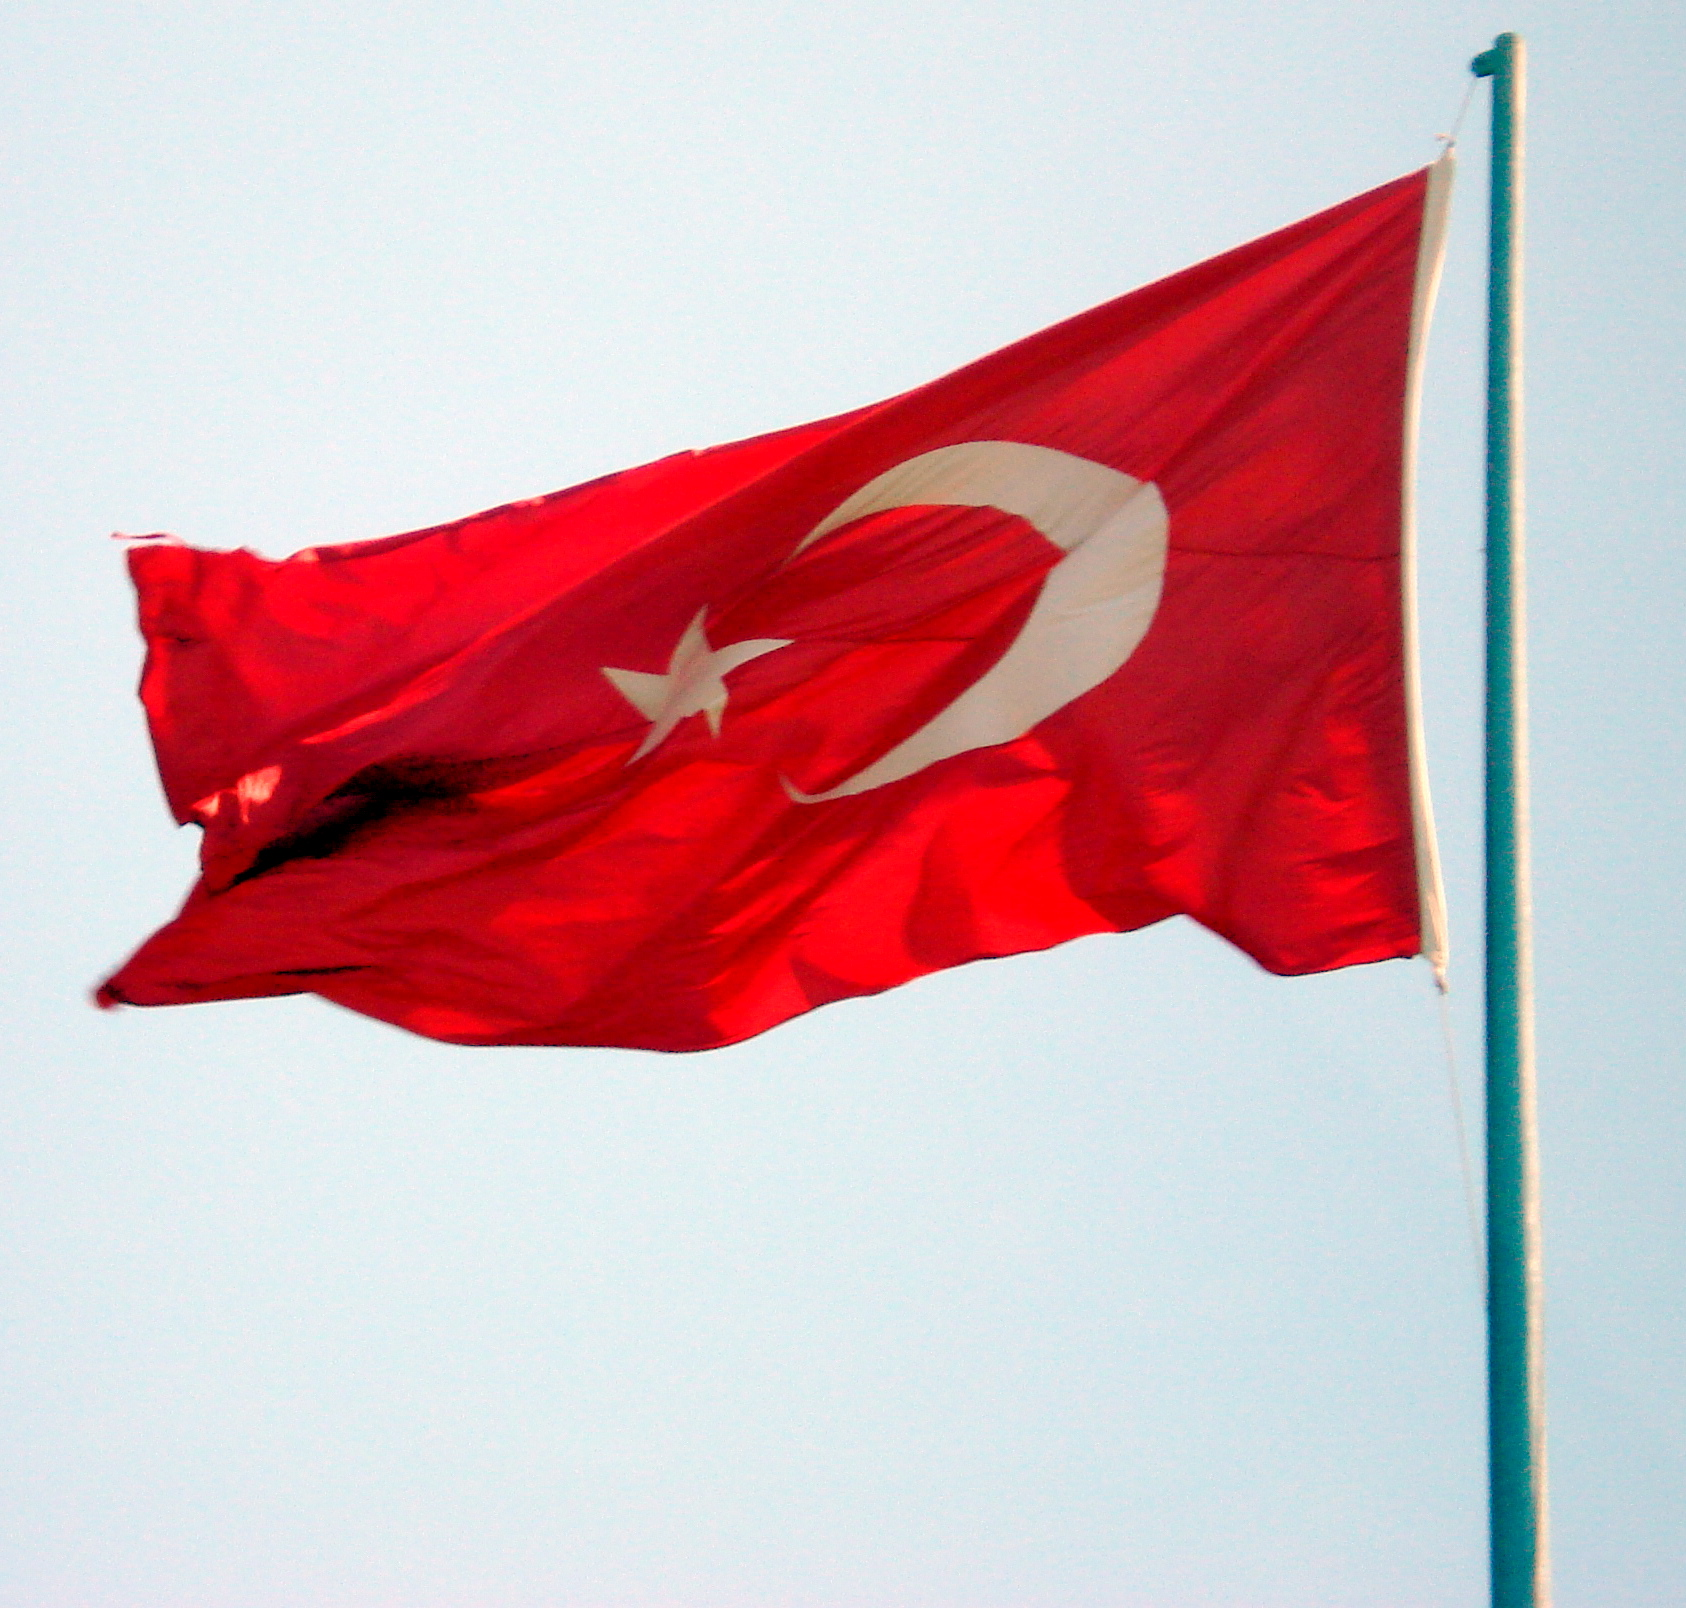 http://upload.wikimedia.org/wikipedia/commons/2/2b/Turkish_flag.JPG